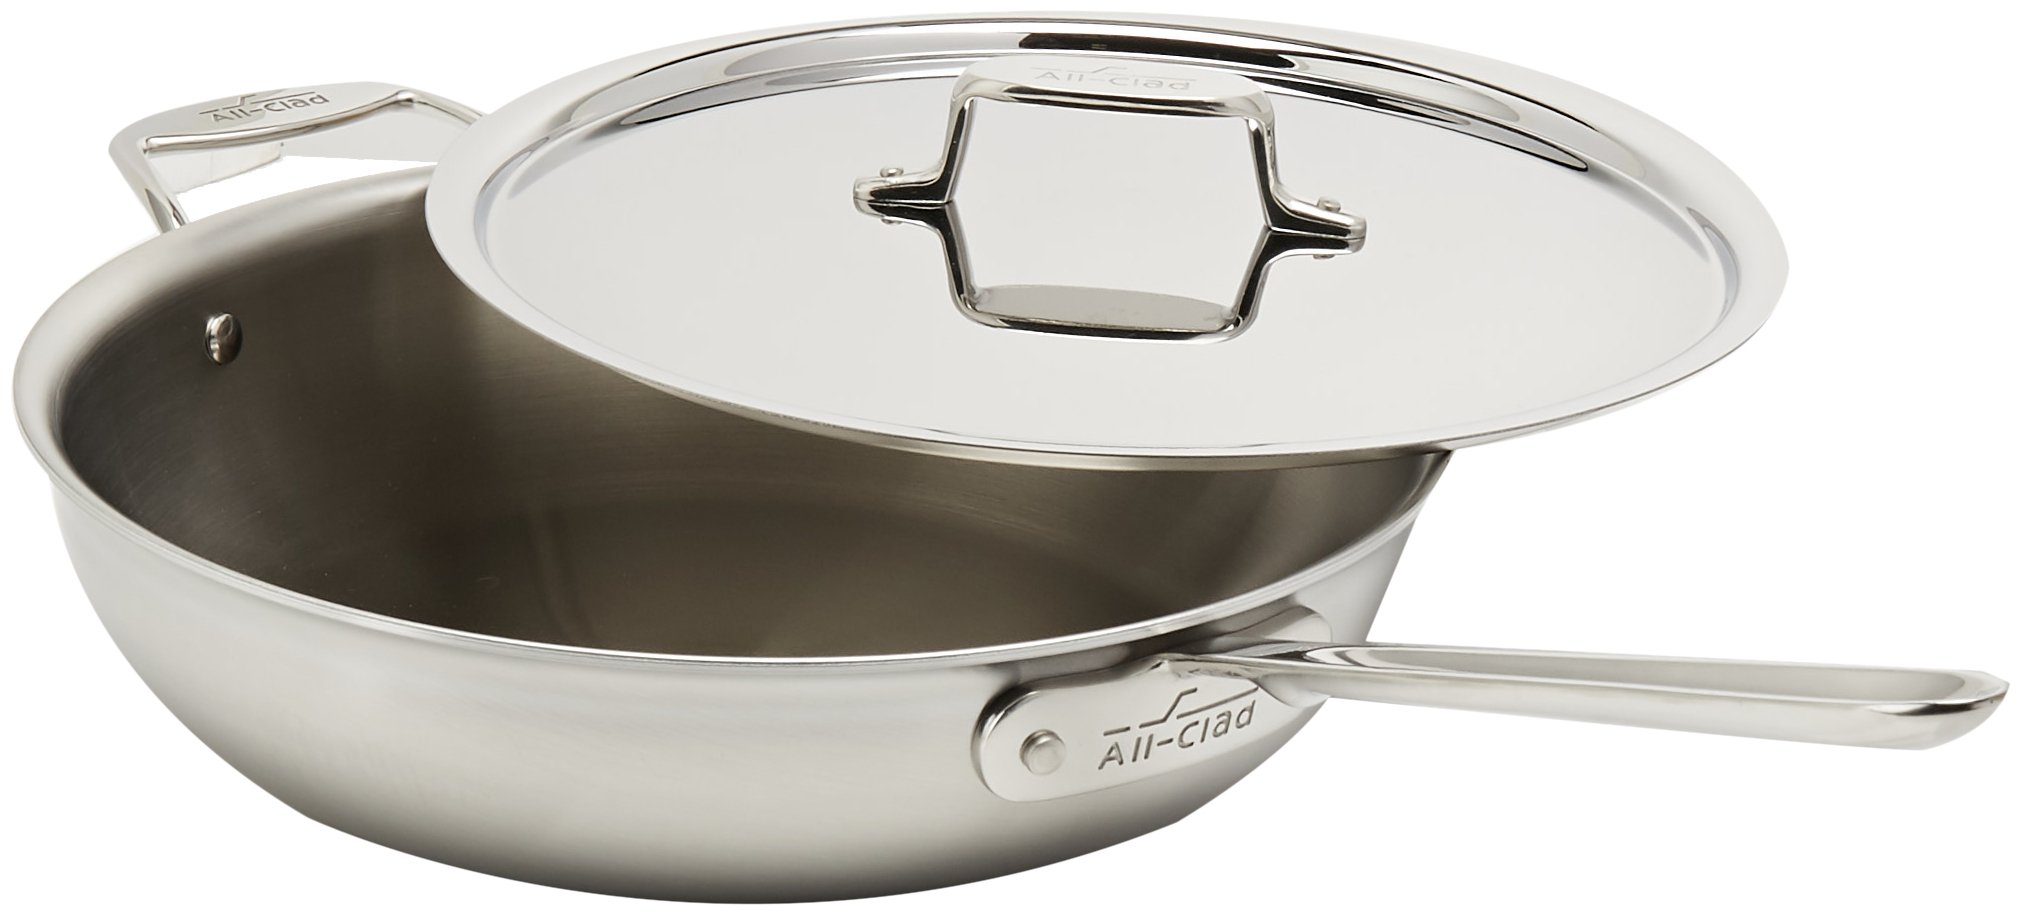 All-Clad BD55404 D5 Brushed 18/10 Stainless Steel 5-Ply Dishwasher Safe Week Night Pan Cookware, 4-Quart, Silver by All-Clad (Image #1)